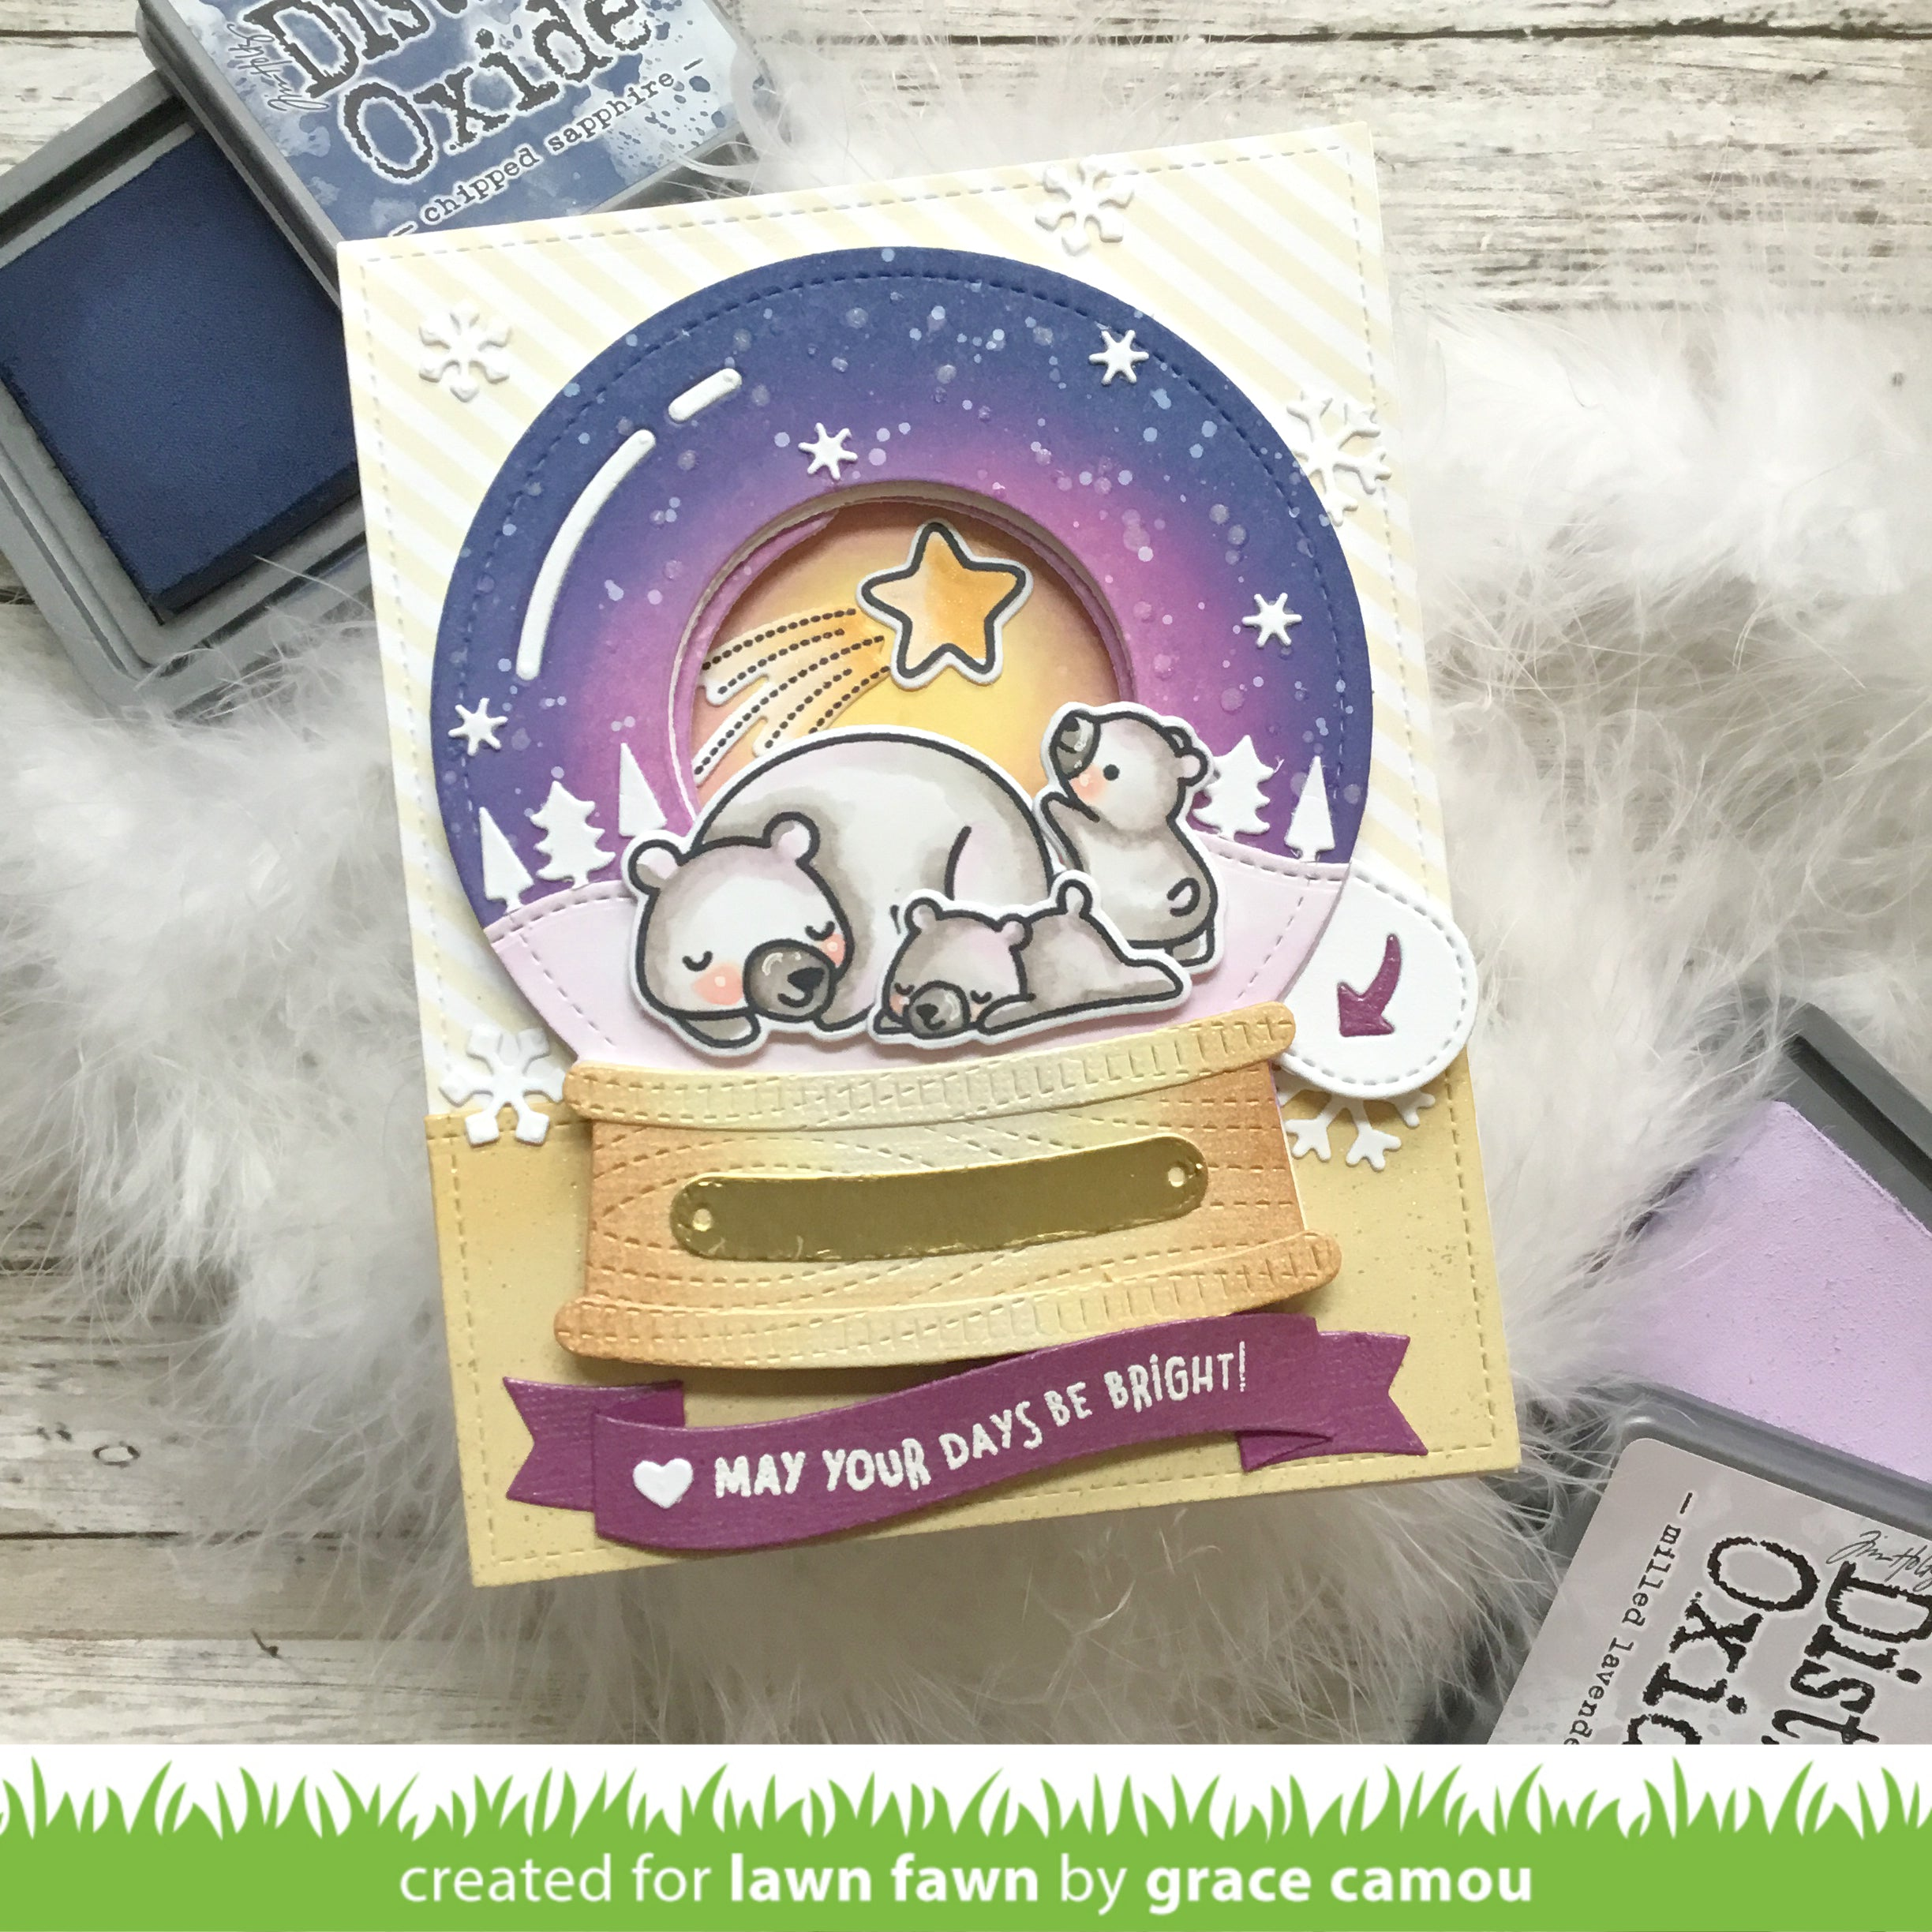 magic iris snow globe add-on